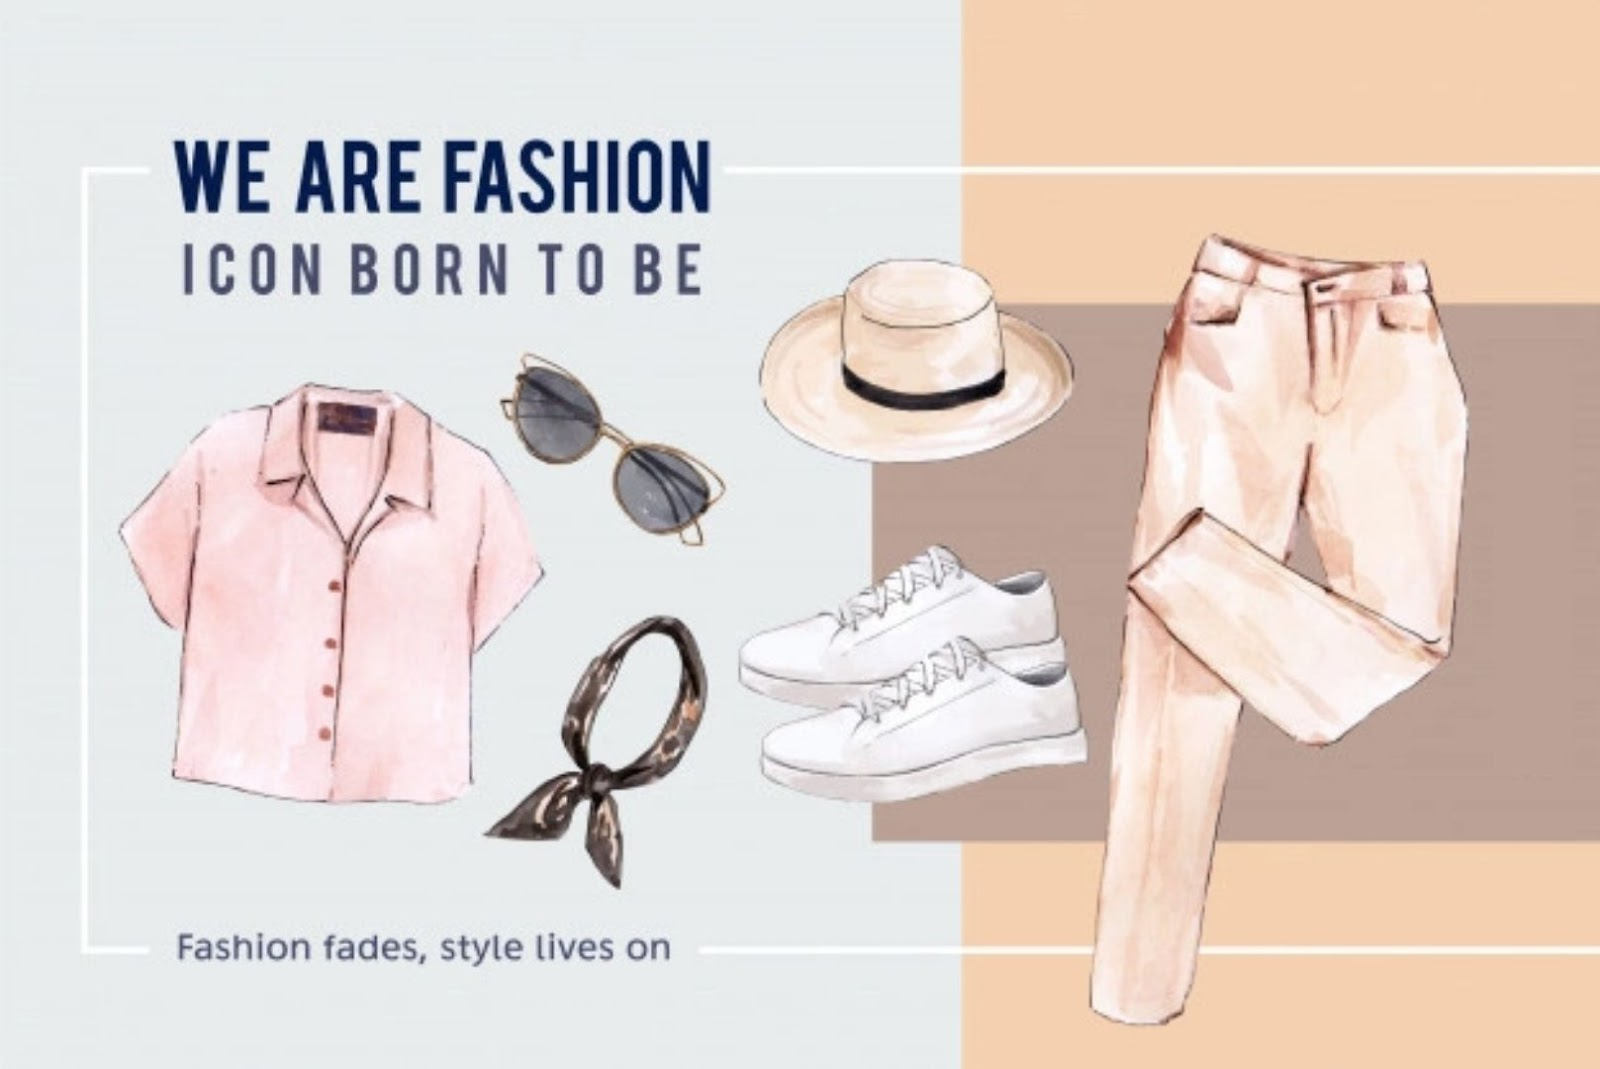 ecommerce business ideas for fashion